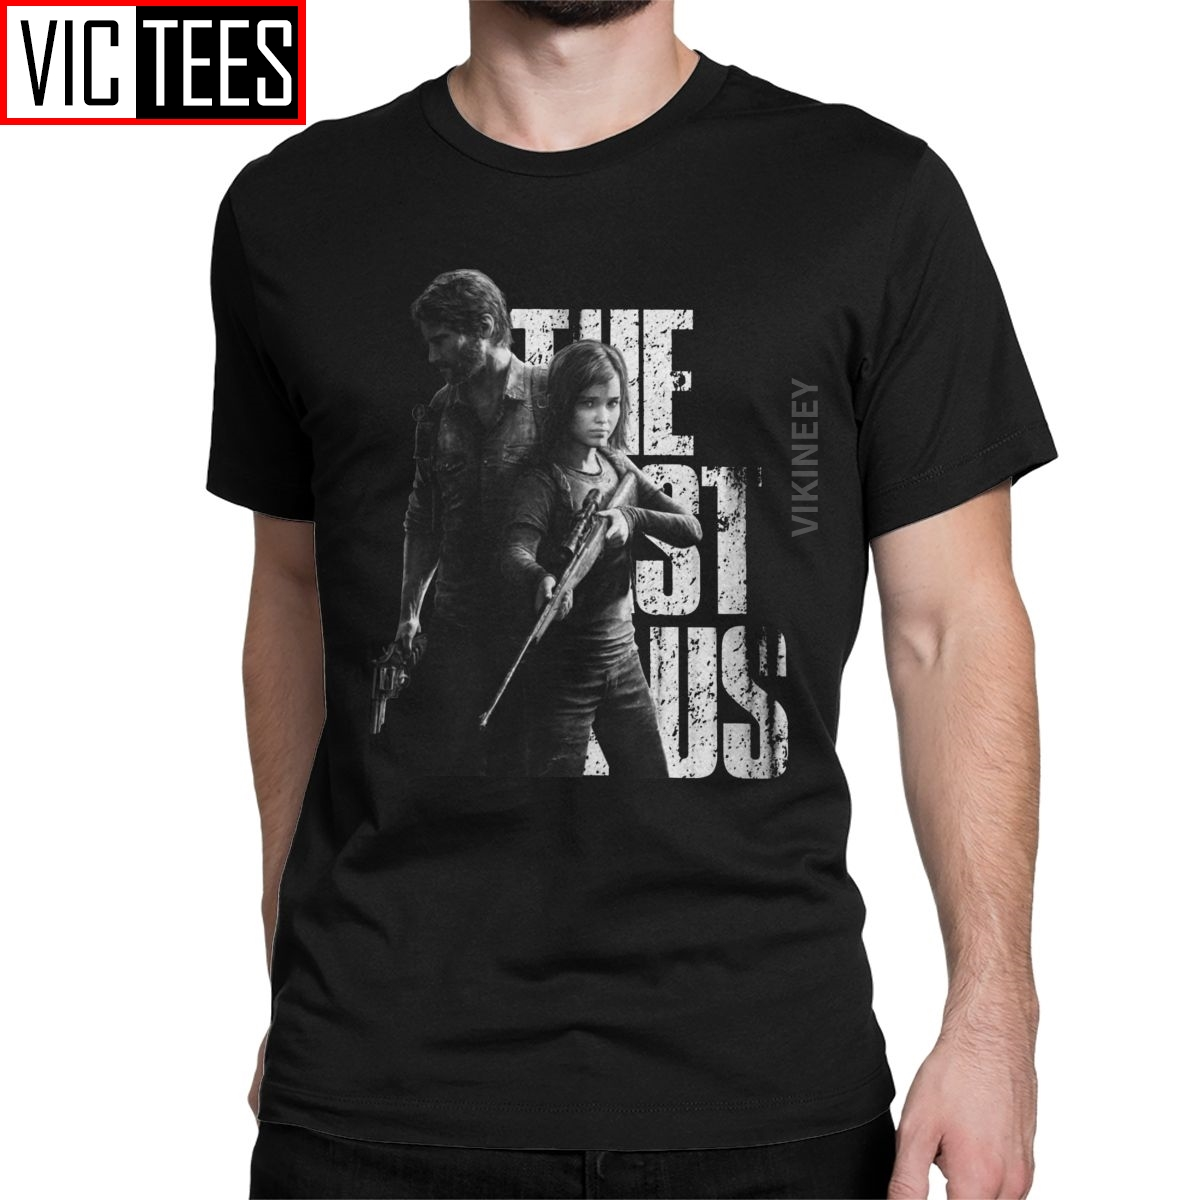 Vintage The Last Of Us Ellie And Joel T-Shirt For Men Cotton Tshirt Fireflies Tlou Video Game Oversized